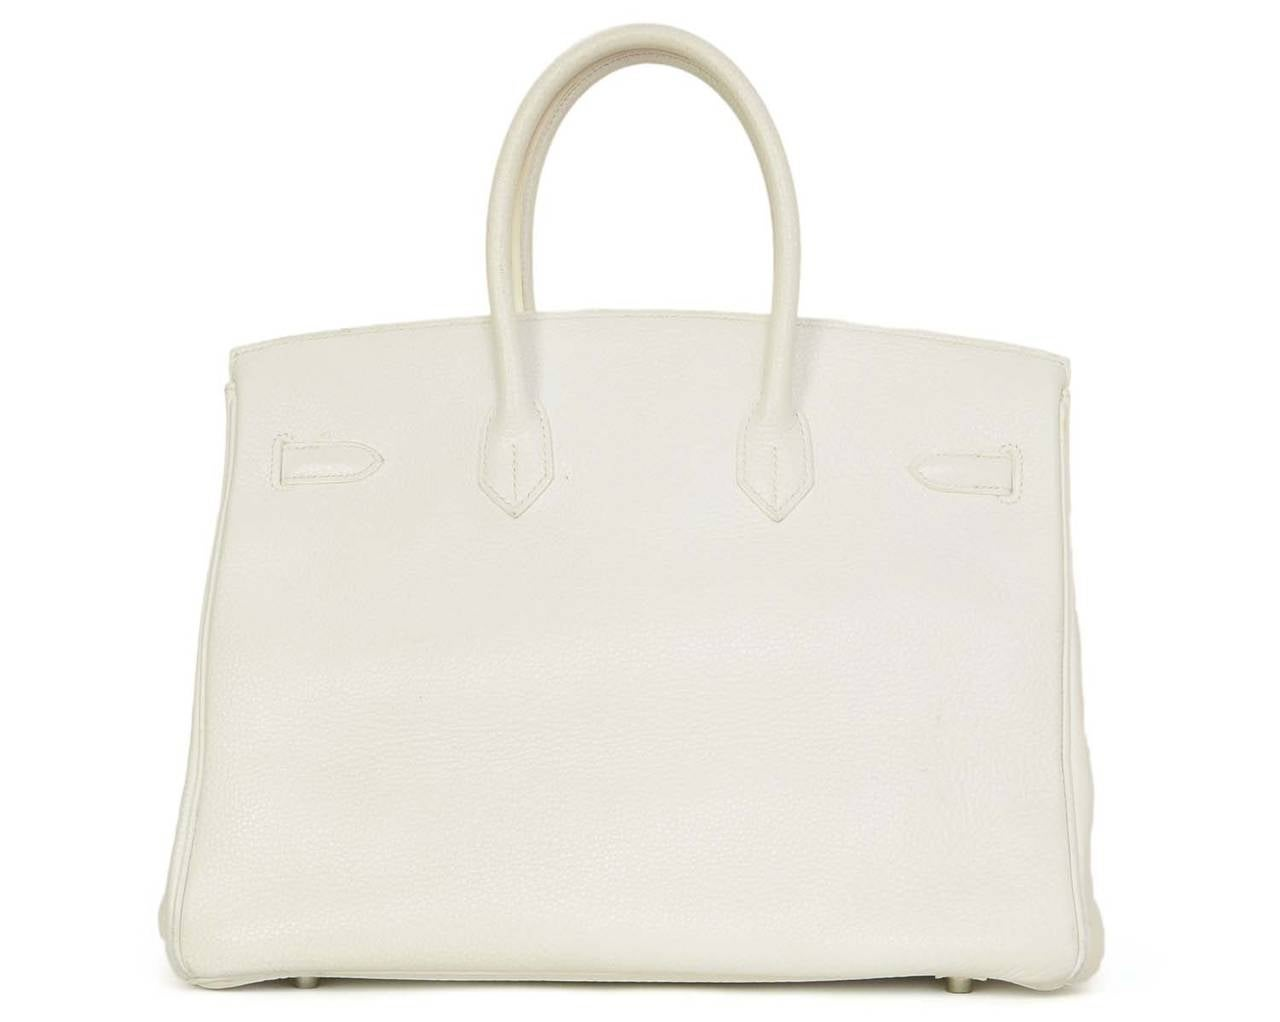 fake hermes handbags - HERMES 2007 White Clemence Leather 35 cm Birkin Bag at 1stdibs